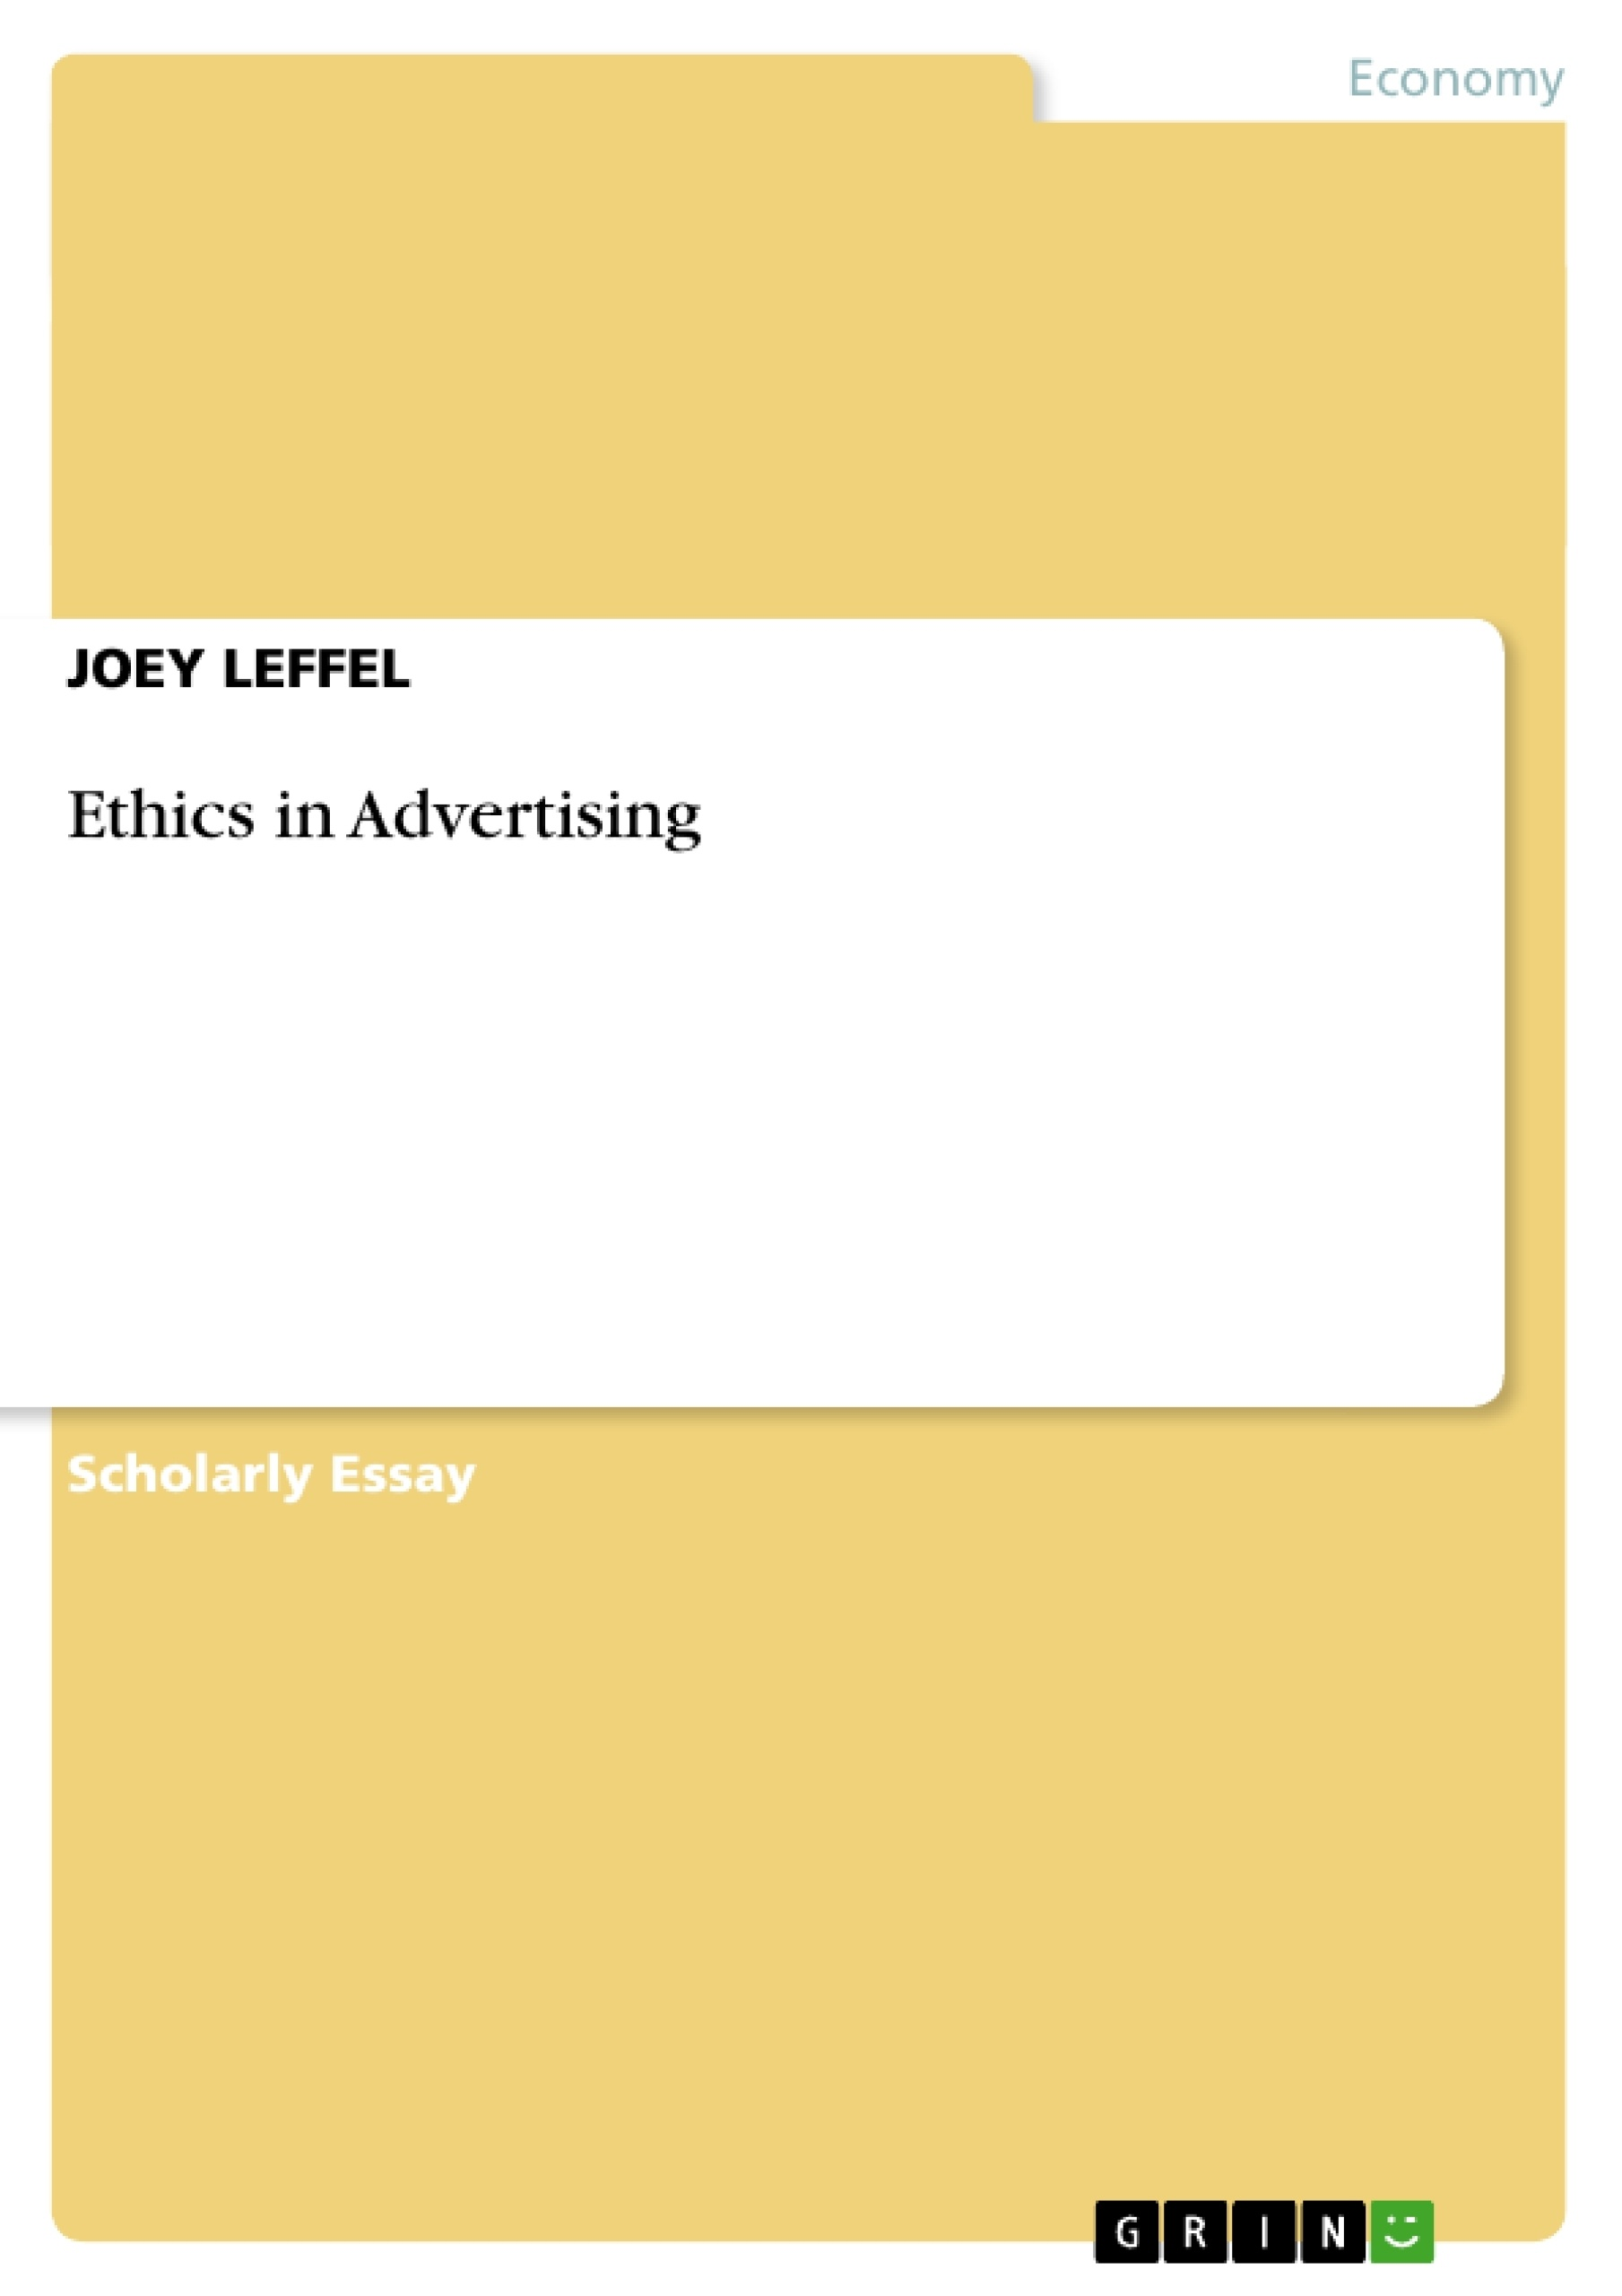 ethics in advertising thesis Ethics in marketing essays: over 180,000 ethics in marketing essays, ethics in marketing term papers, ethics in marketing research paper, book reports 184 990 essays.